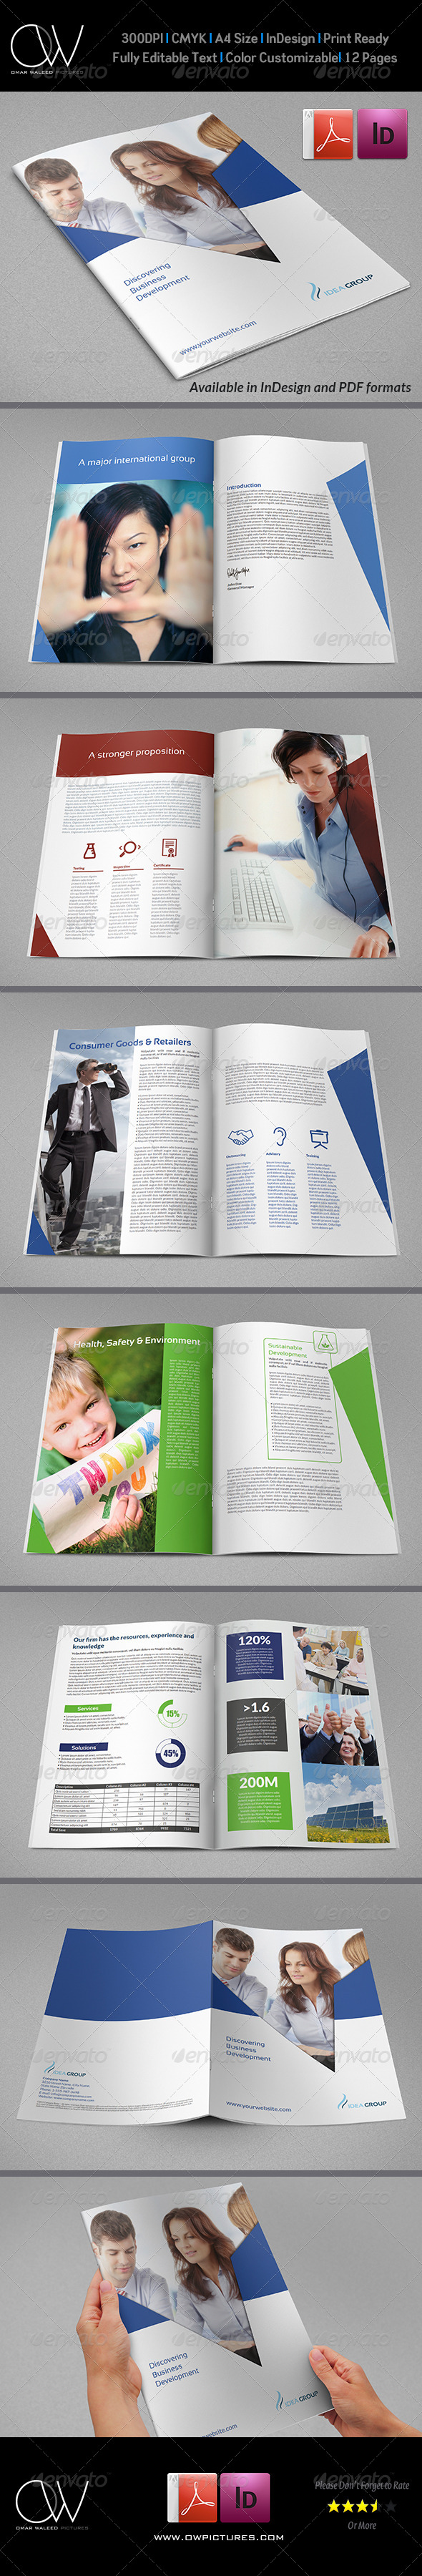 GraphicRiver Corporate Brochure Template Vol.29 12 Pages 7009477